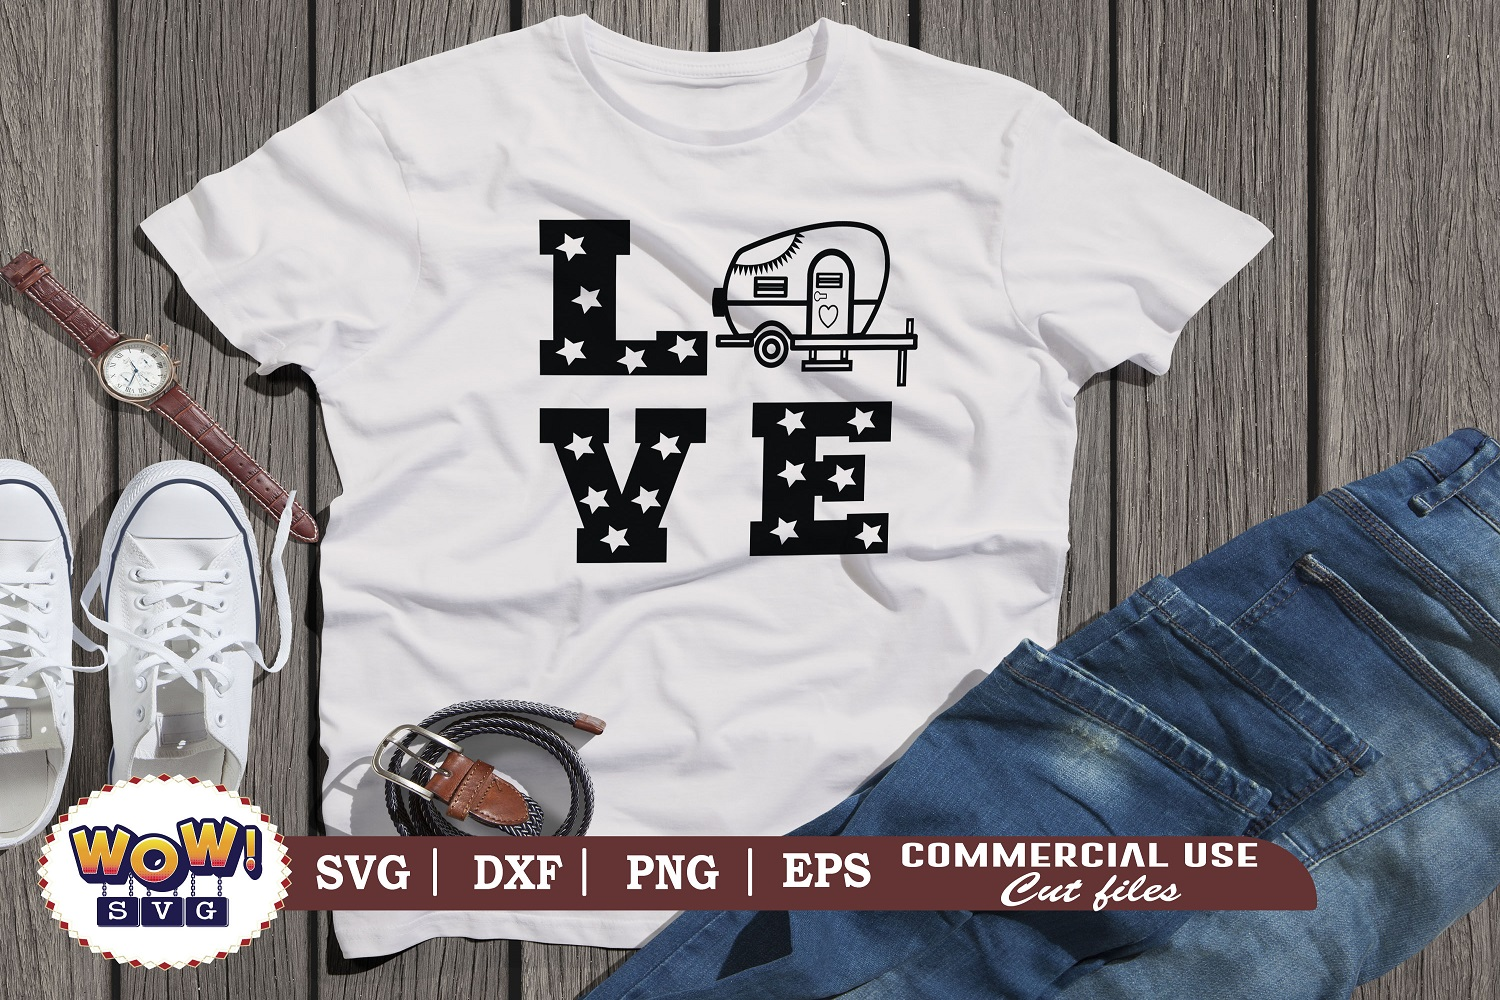 Camping Love Svg Camping Svg Rv Svg Png Graphic By Wowsvgstudio Creative Fabrica